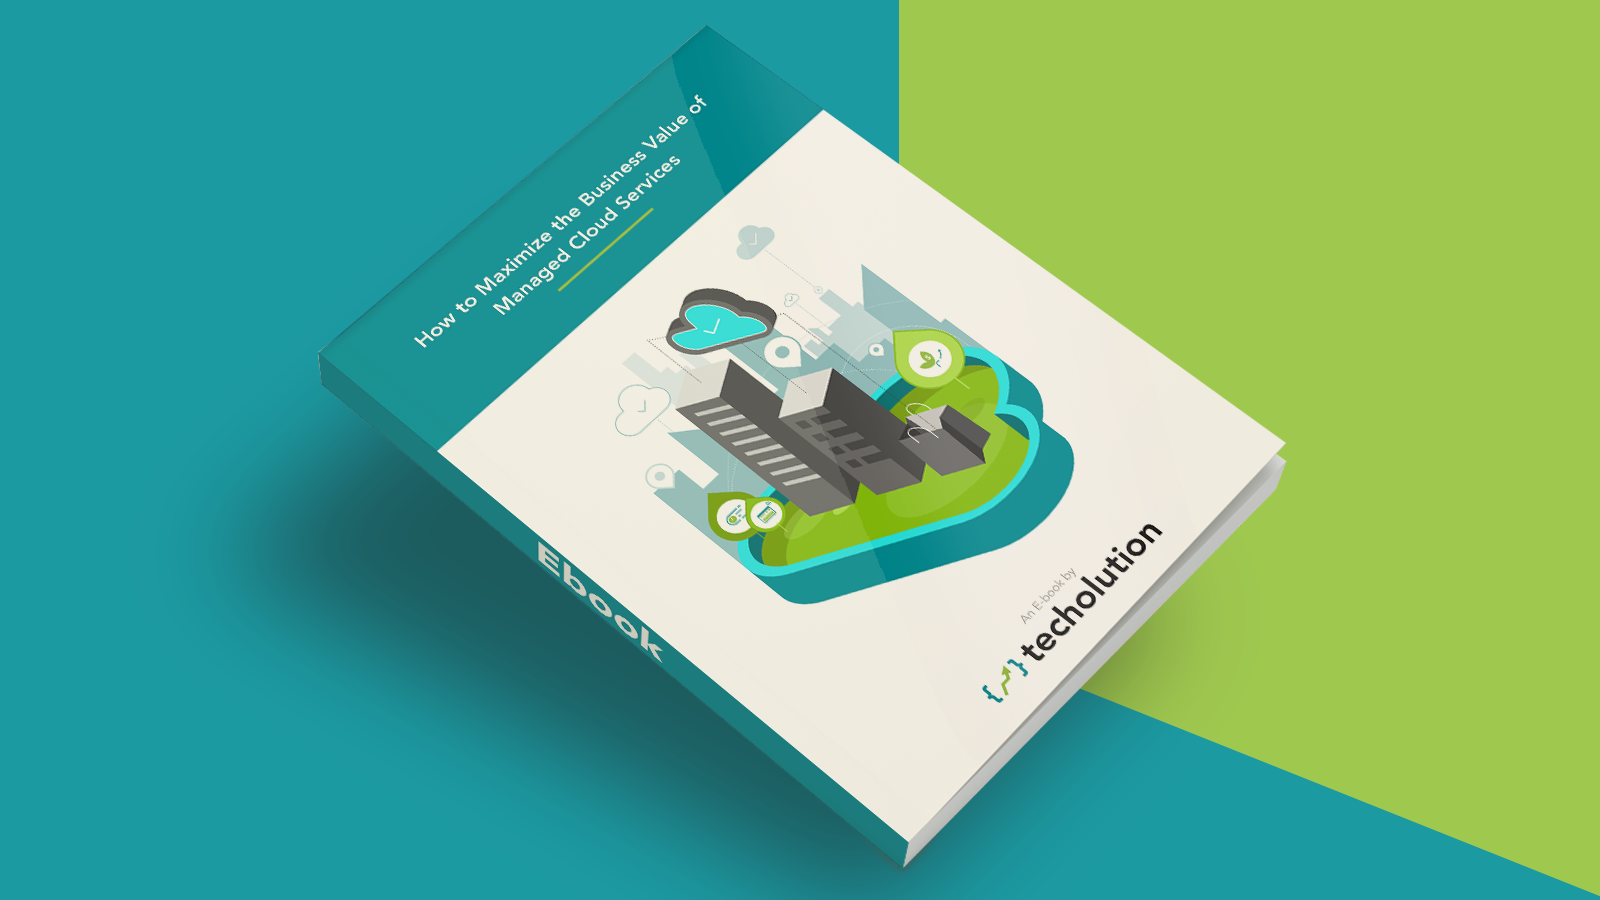 Cloud Managed Services eBook